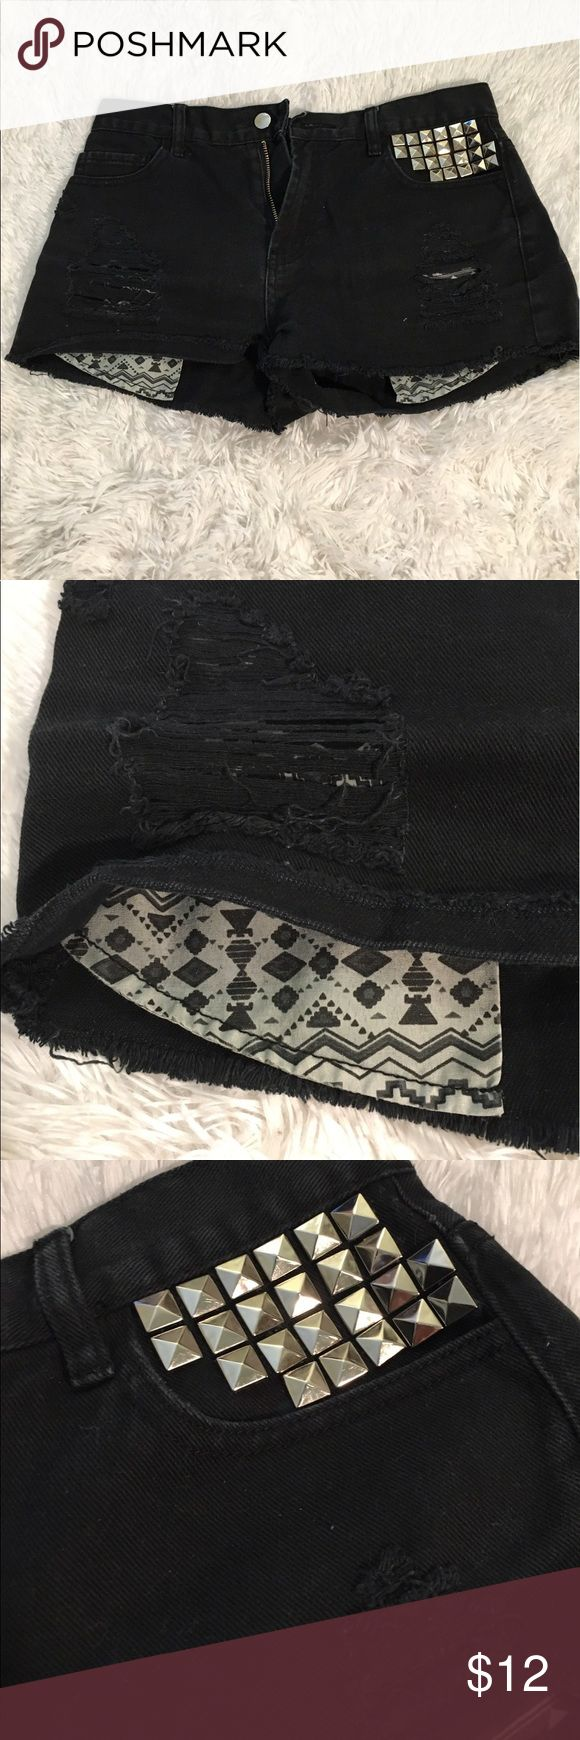 Forever 21 Black Distressed Studded Shirts Sz 28 Forever 21 Black Distressed Studded Shirts Sz 28 Forever 21 Shorts Jean Shorts